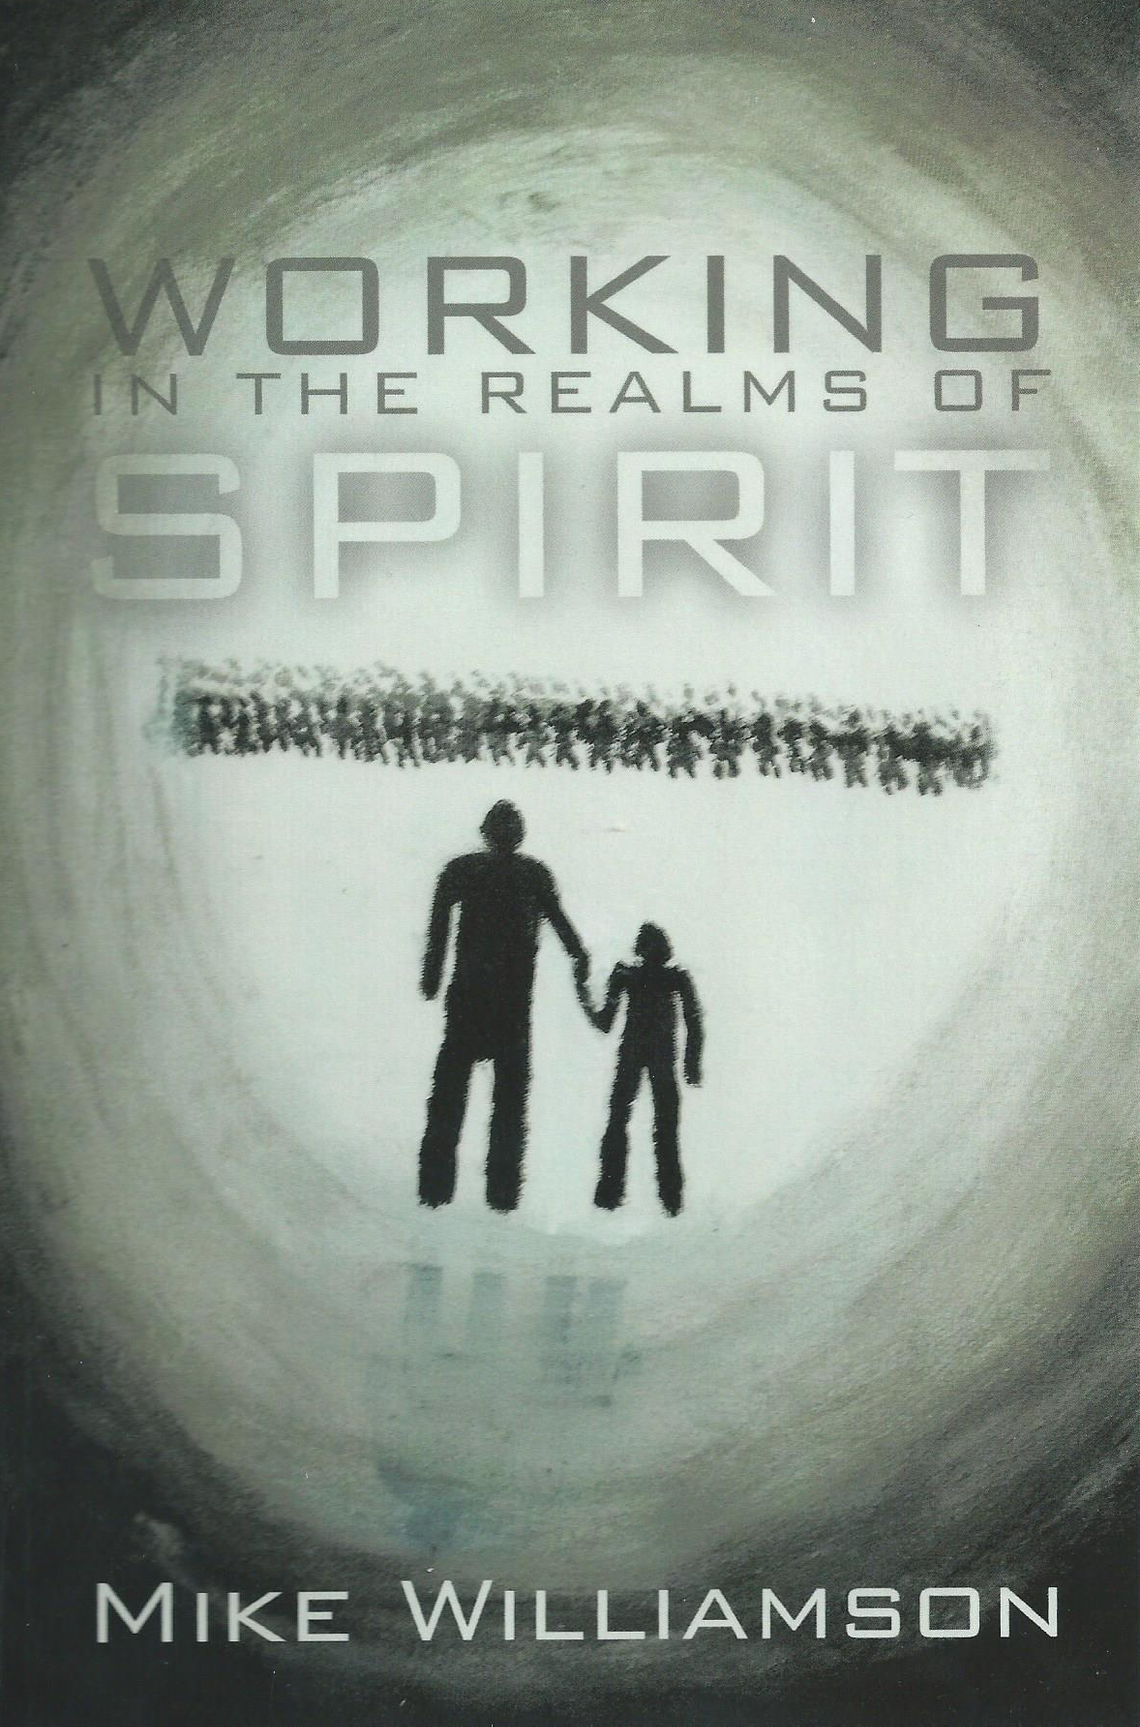 Working in the realms of the spirit